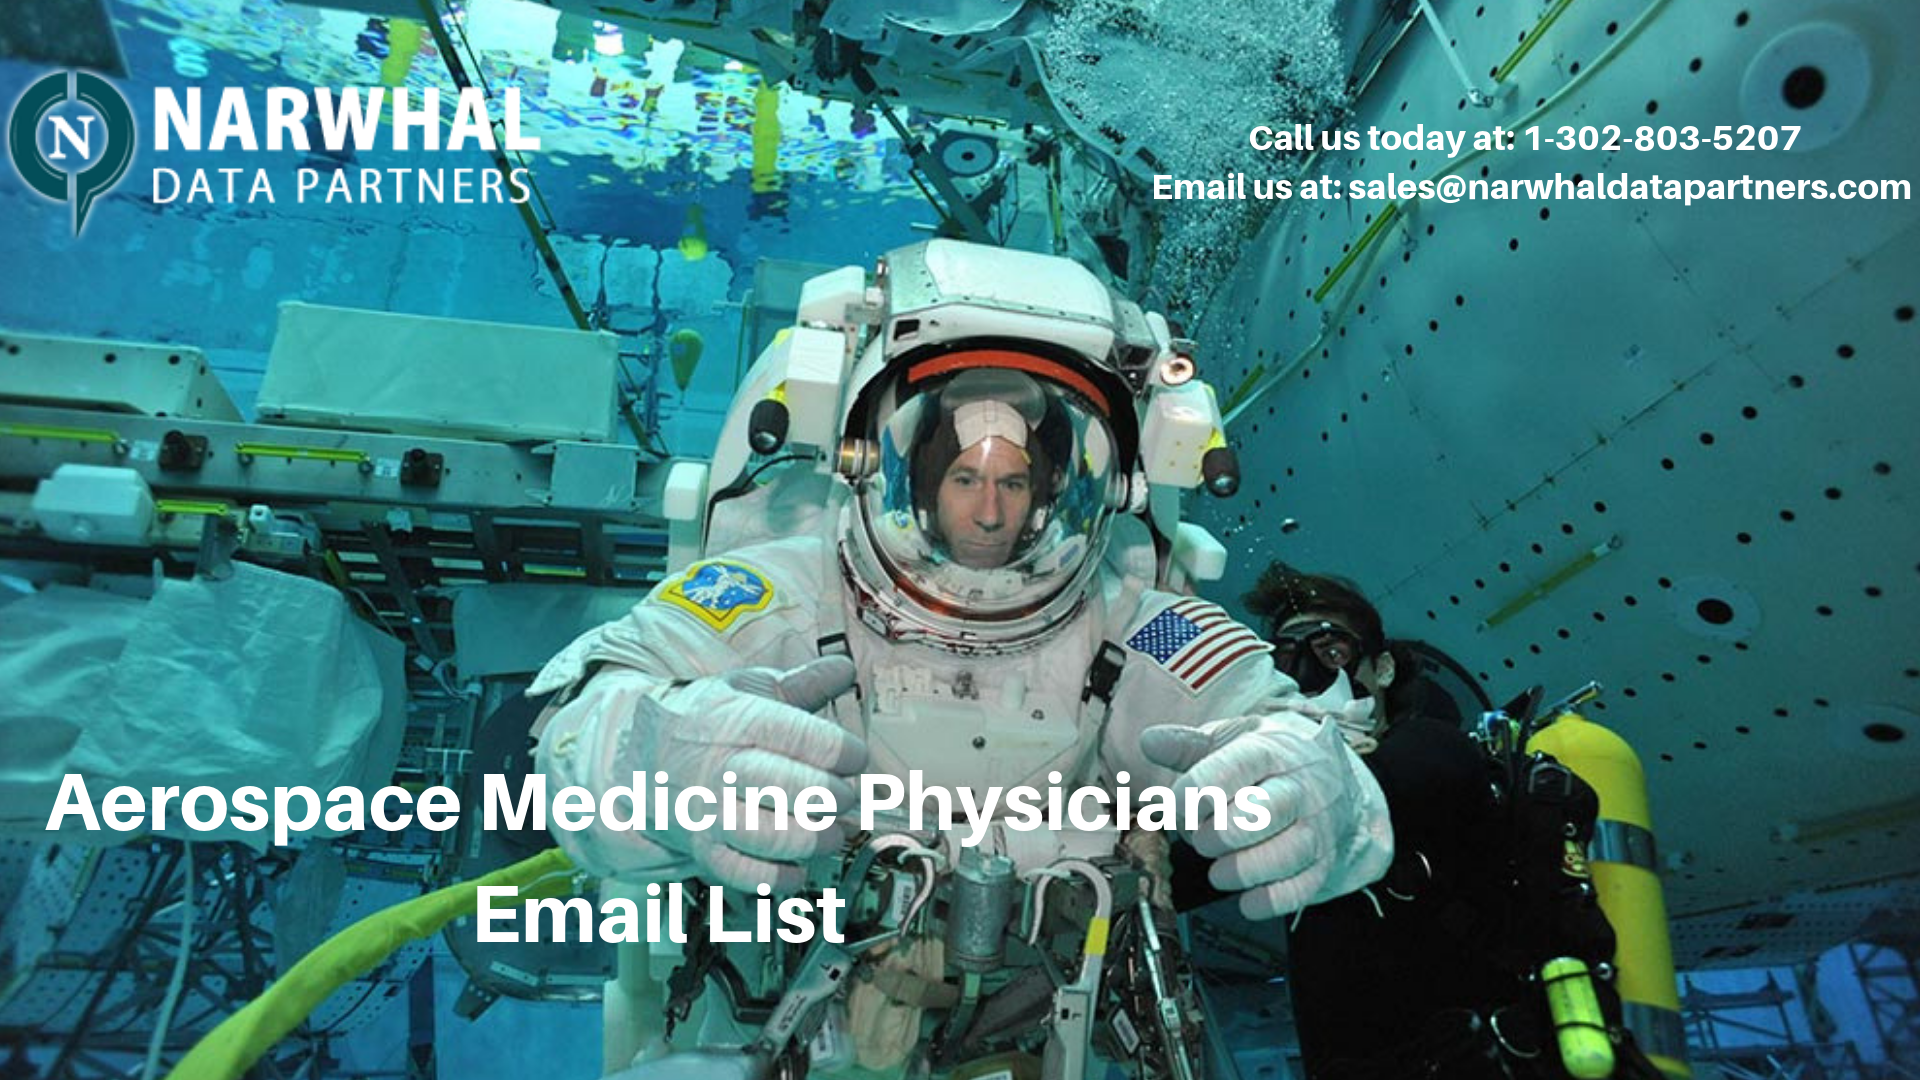 http://narwhaldatapartners.com/aerospace-medicine-physicians-email-list.html